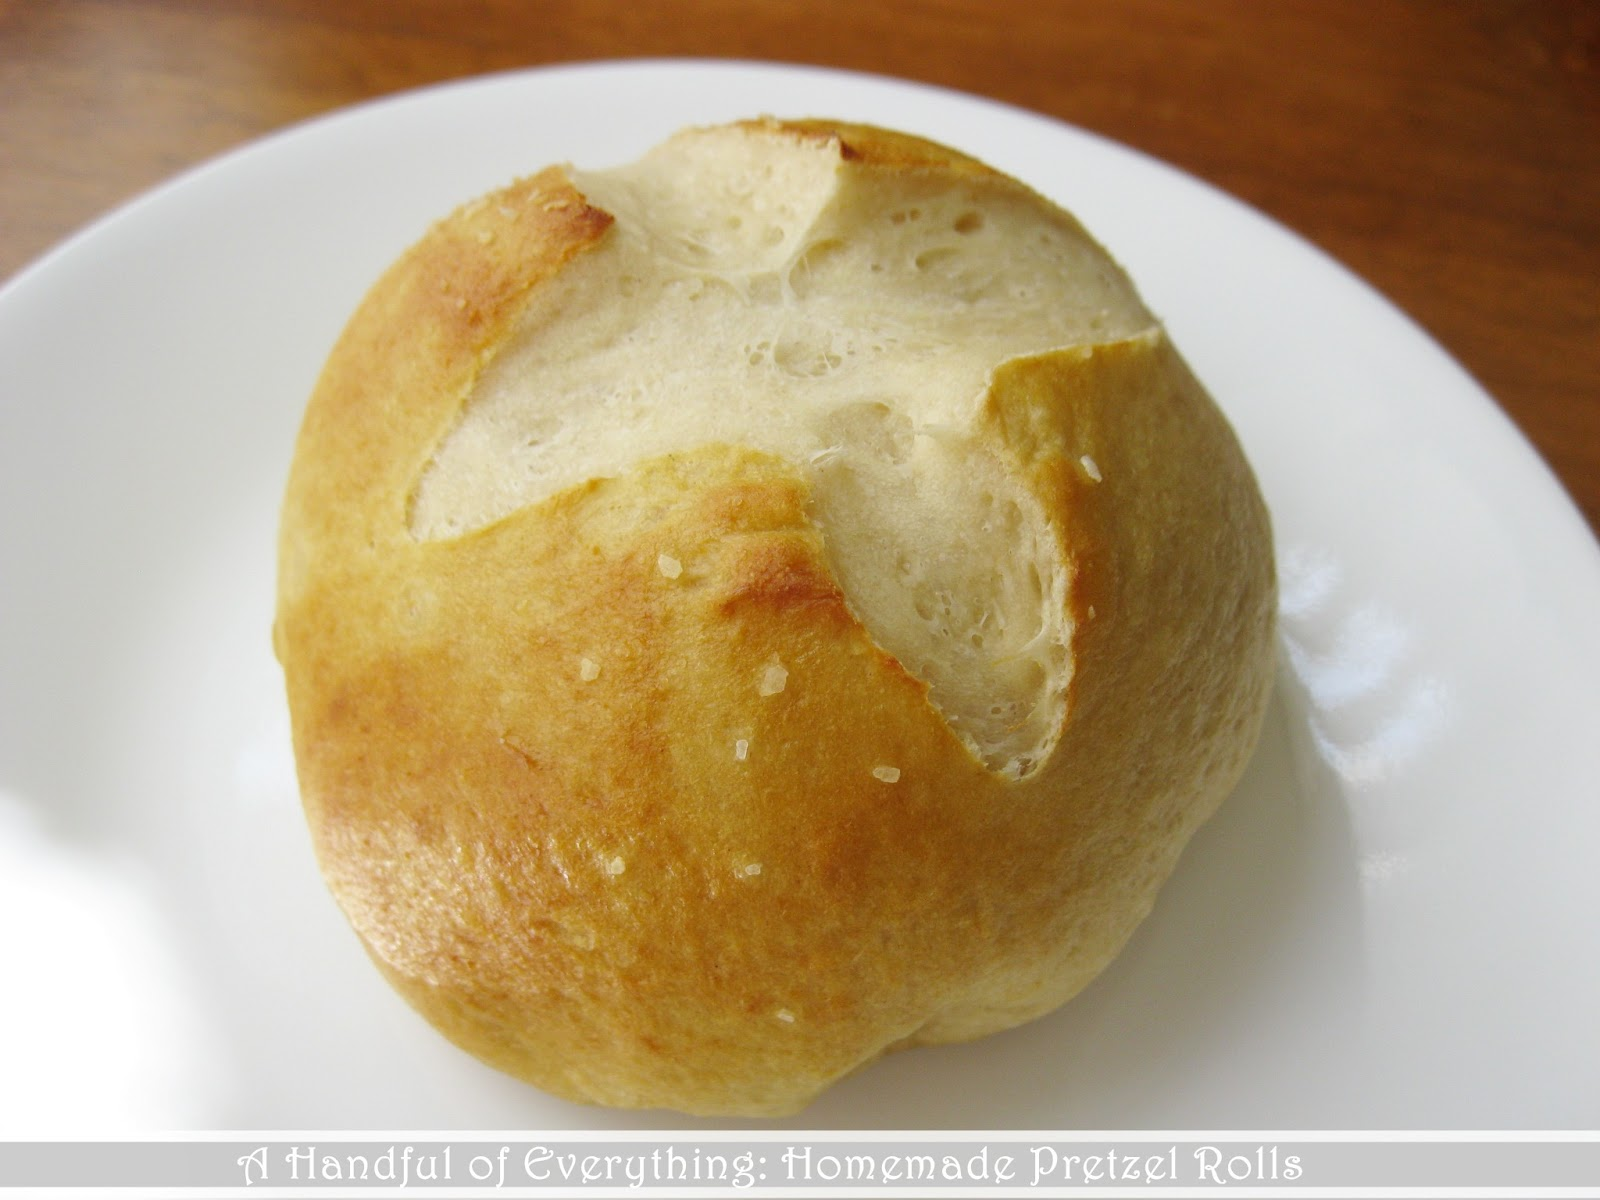 A Handful of Everything: Homemade Pretzel Rolls